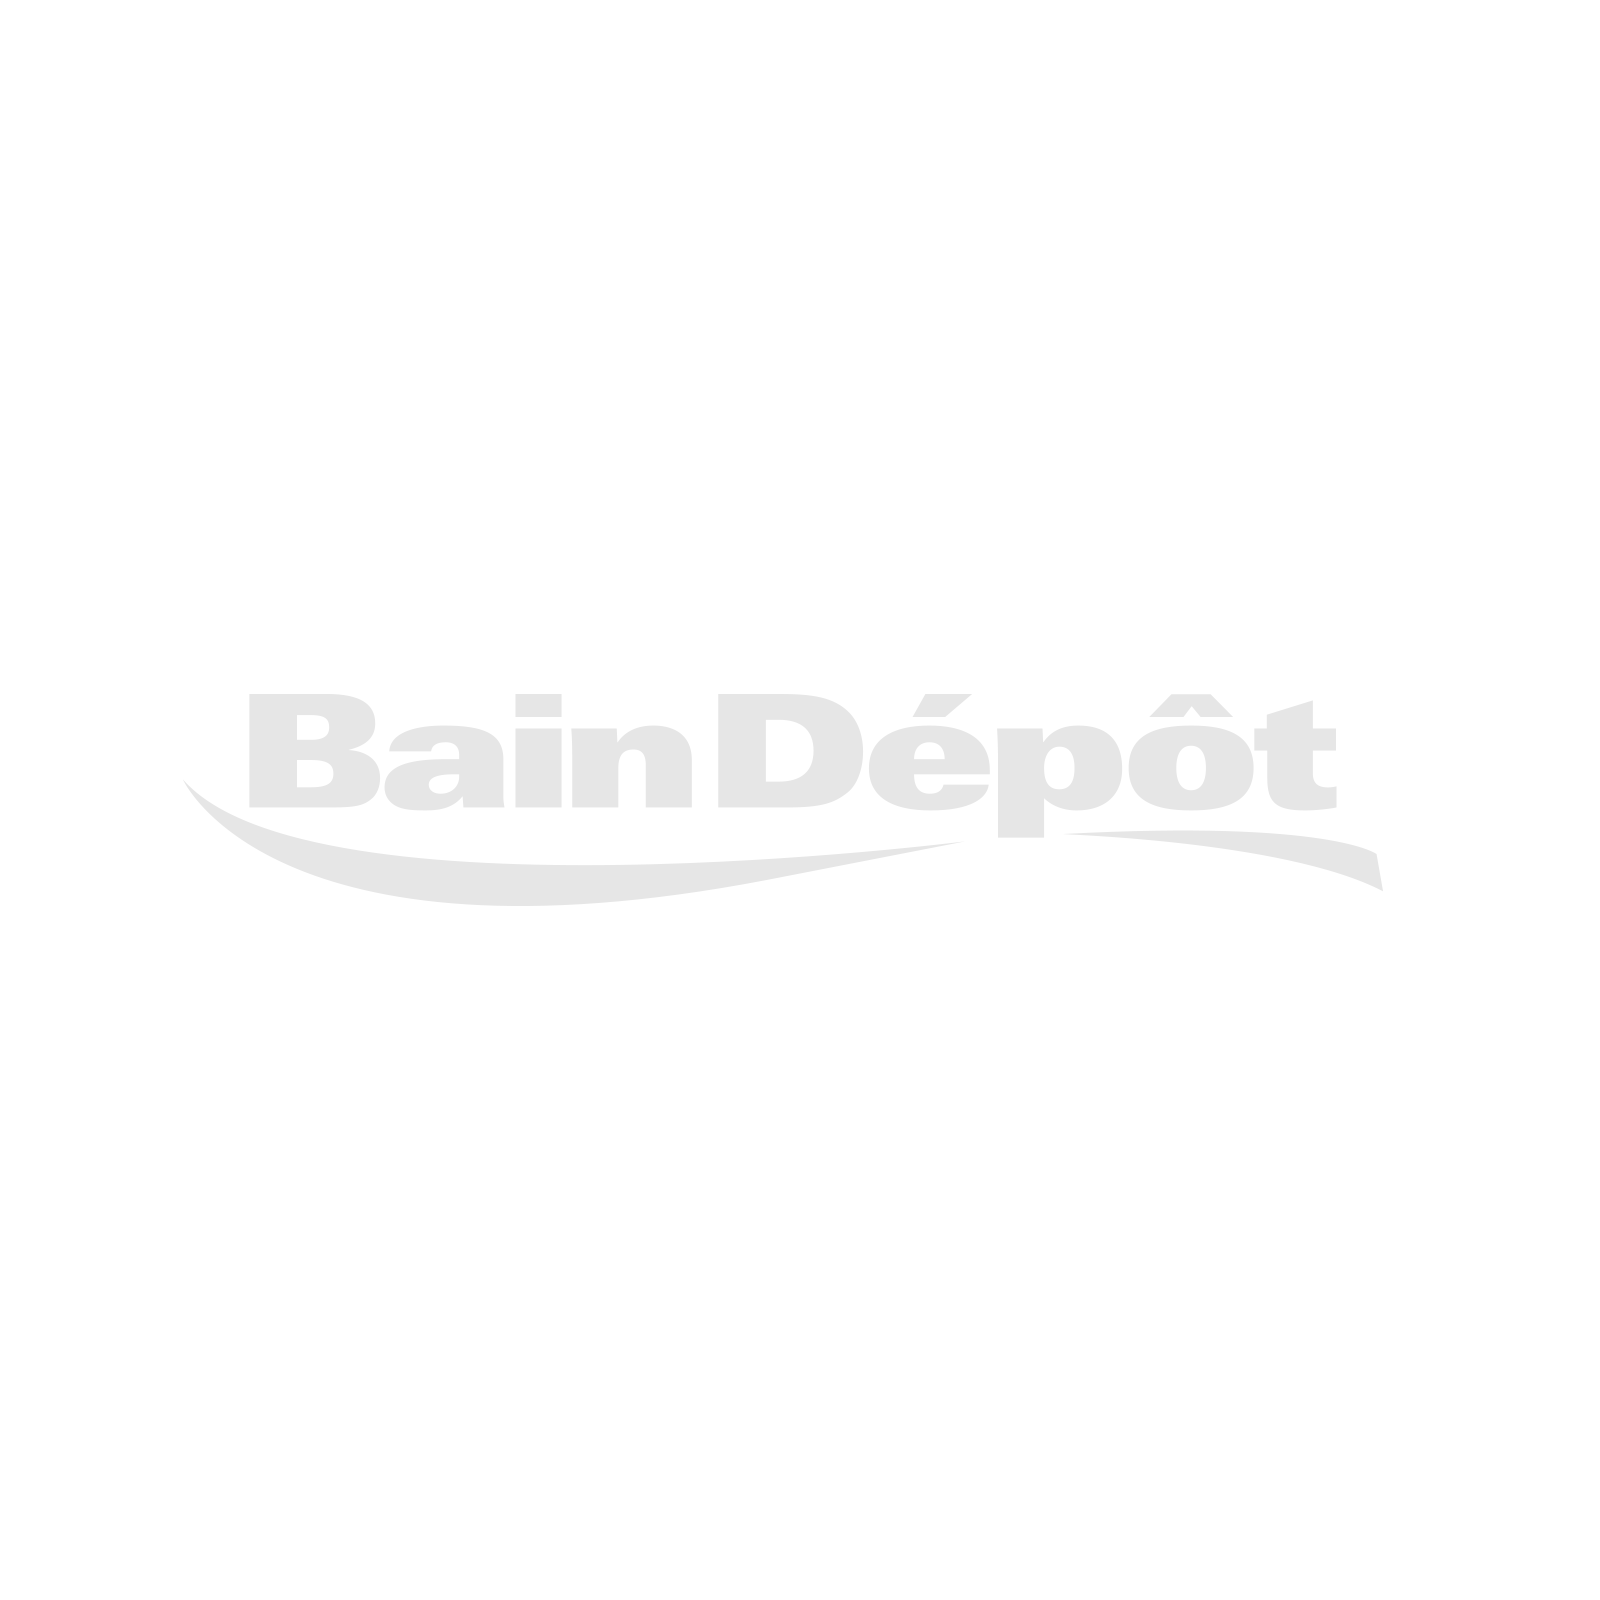 "36"" x 32"" rectangular shower base for left corner installation"